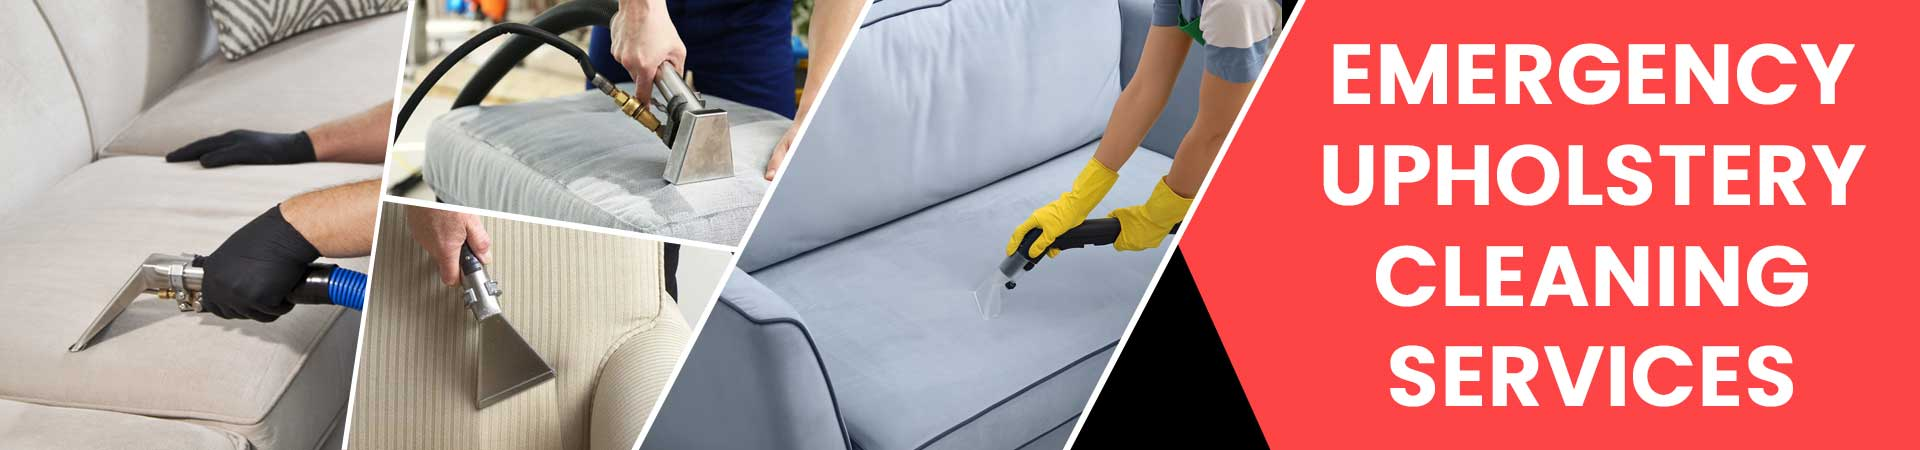 Emergency Upholstery Cleaning